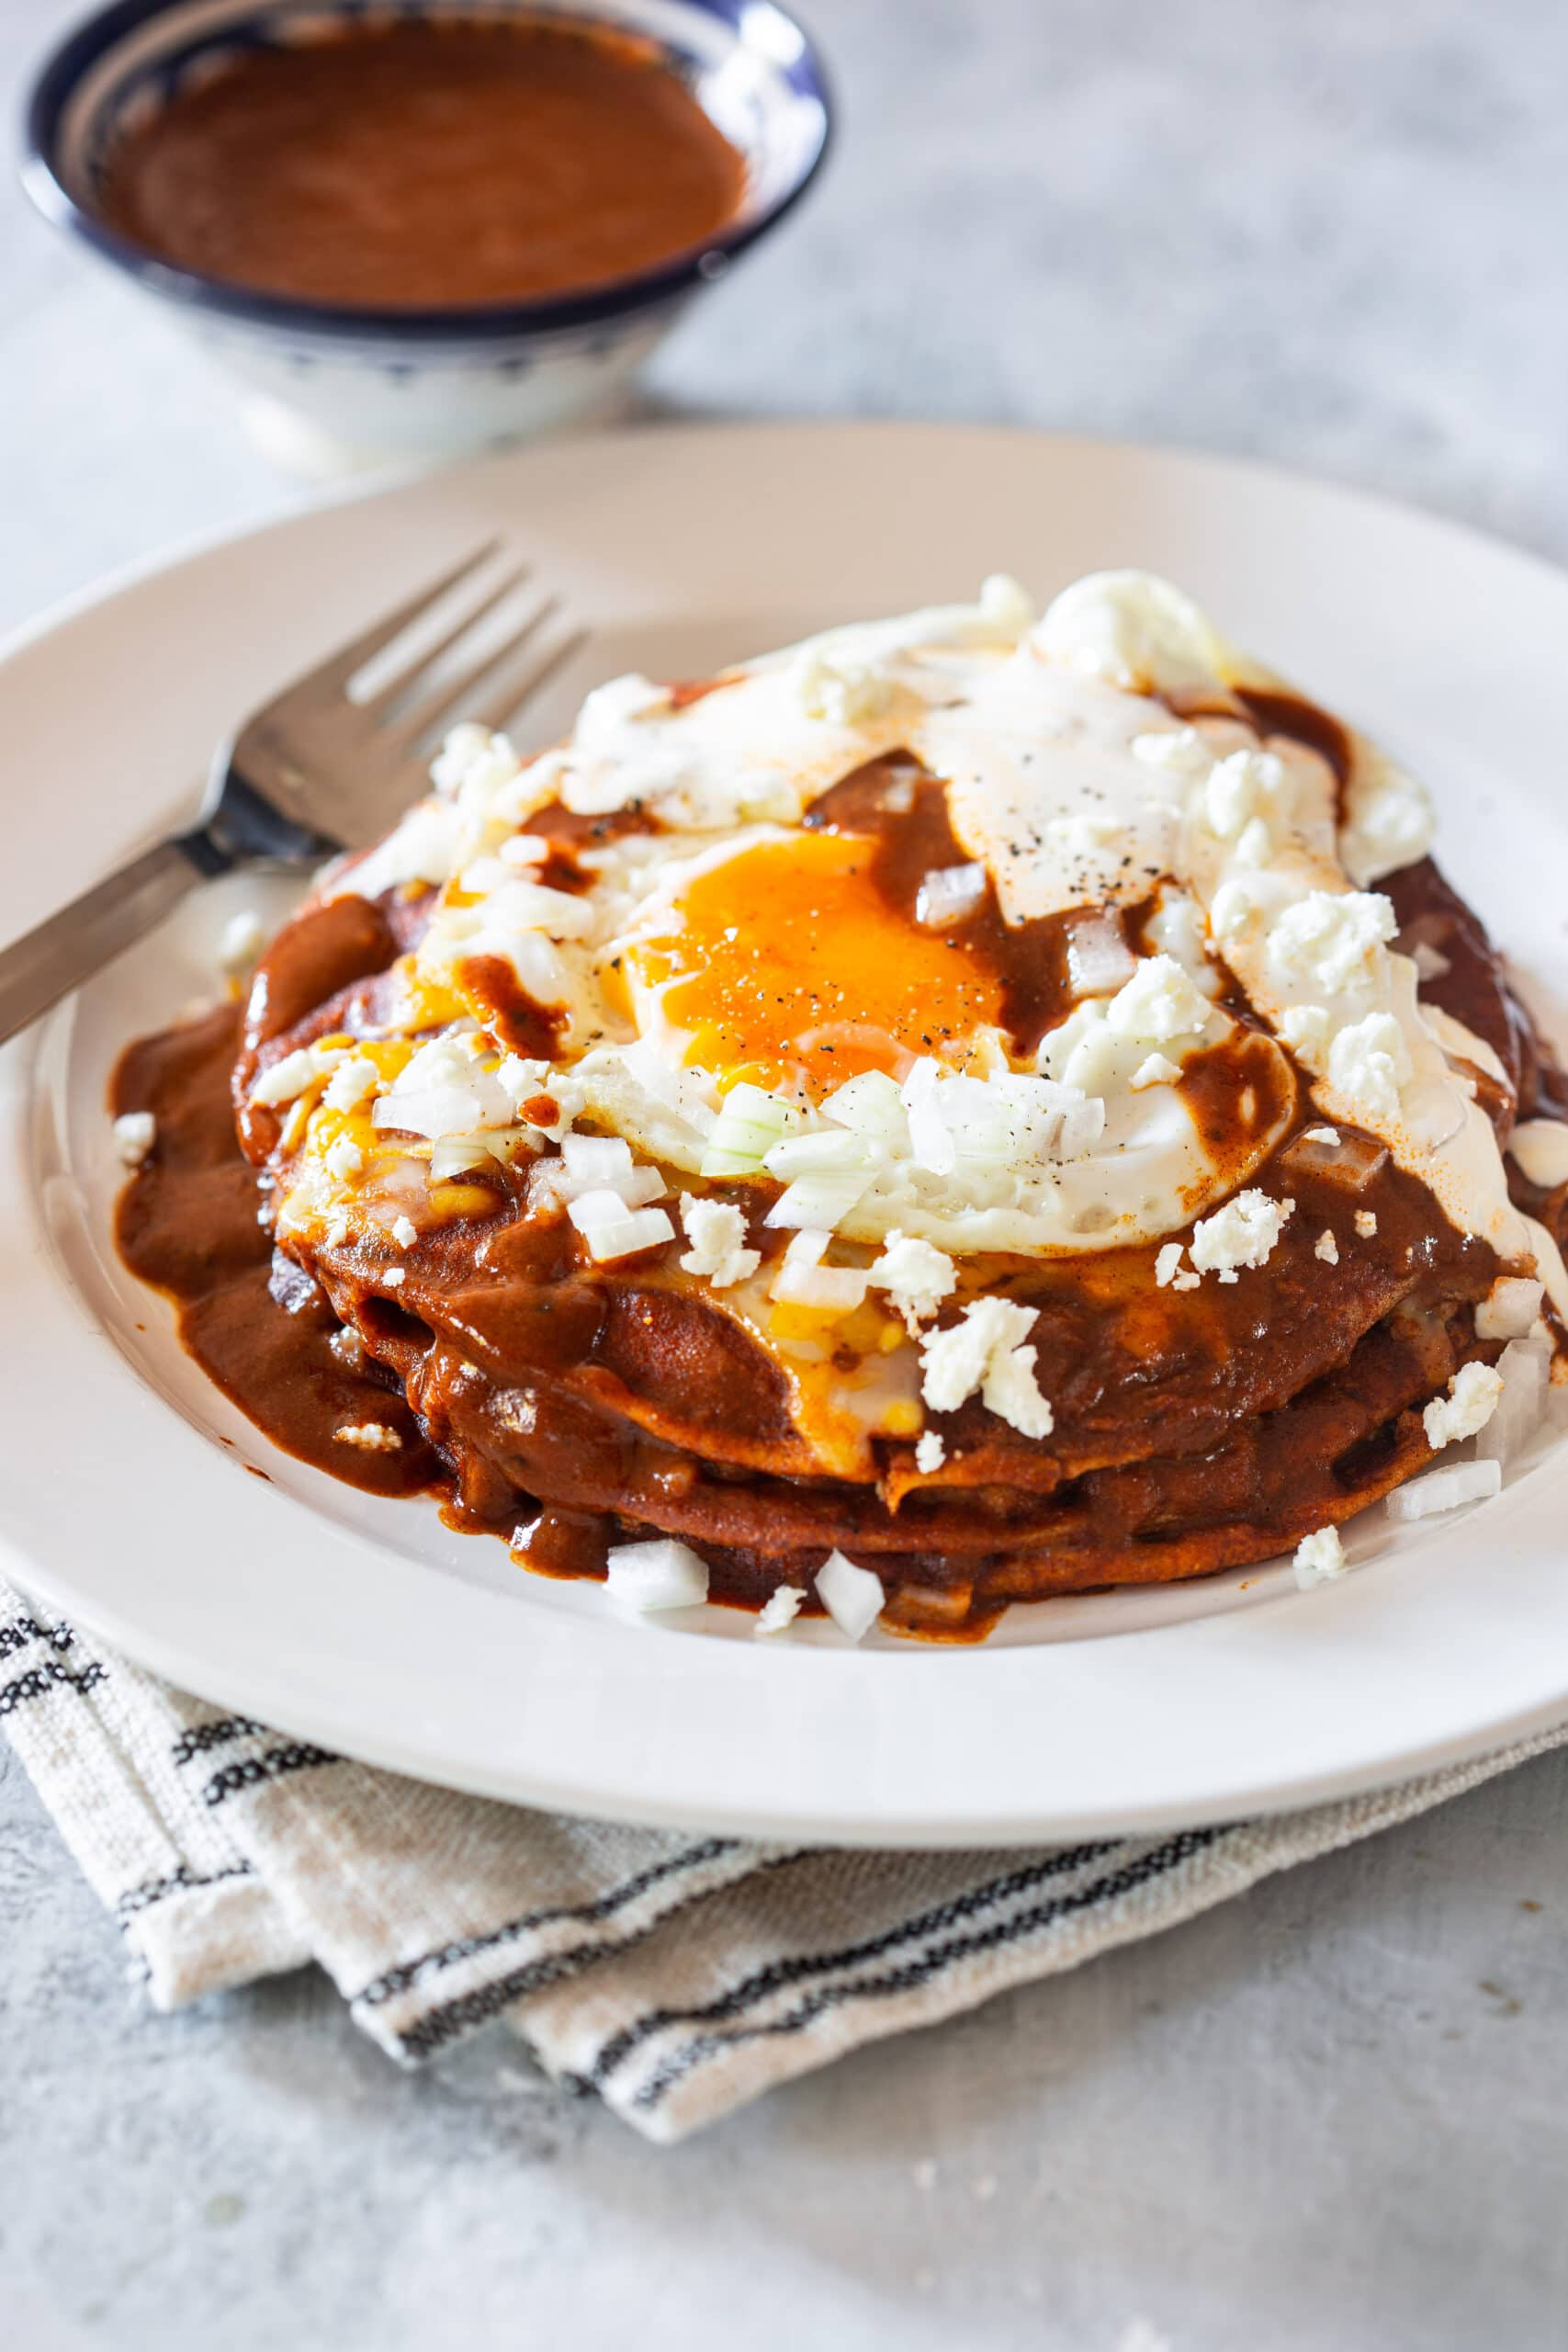 Stacked enchiladas served with a fried egg on top.